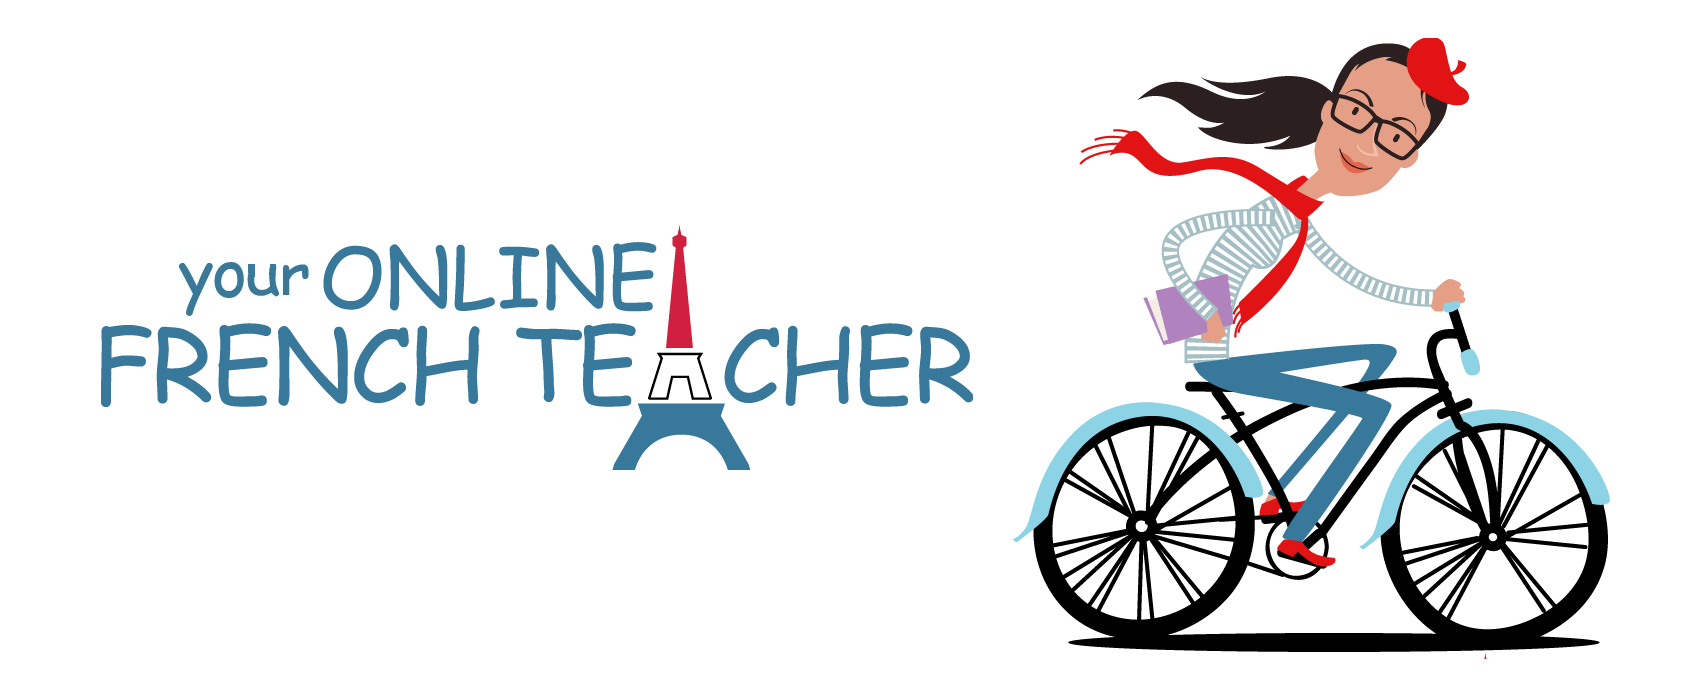 Your online French teacher